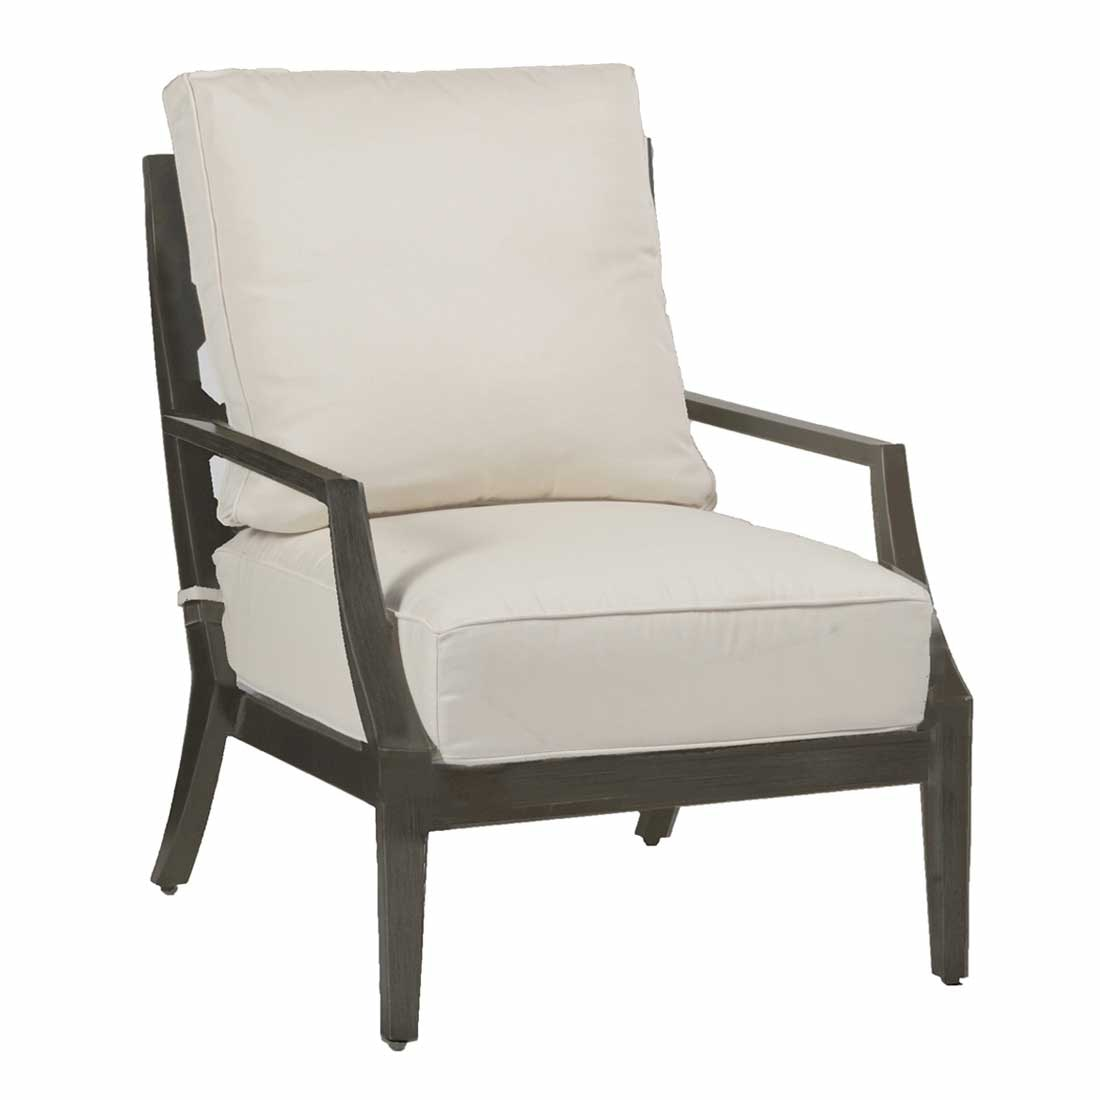 Summer Classics Lattice Lounge Chair 450731